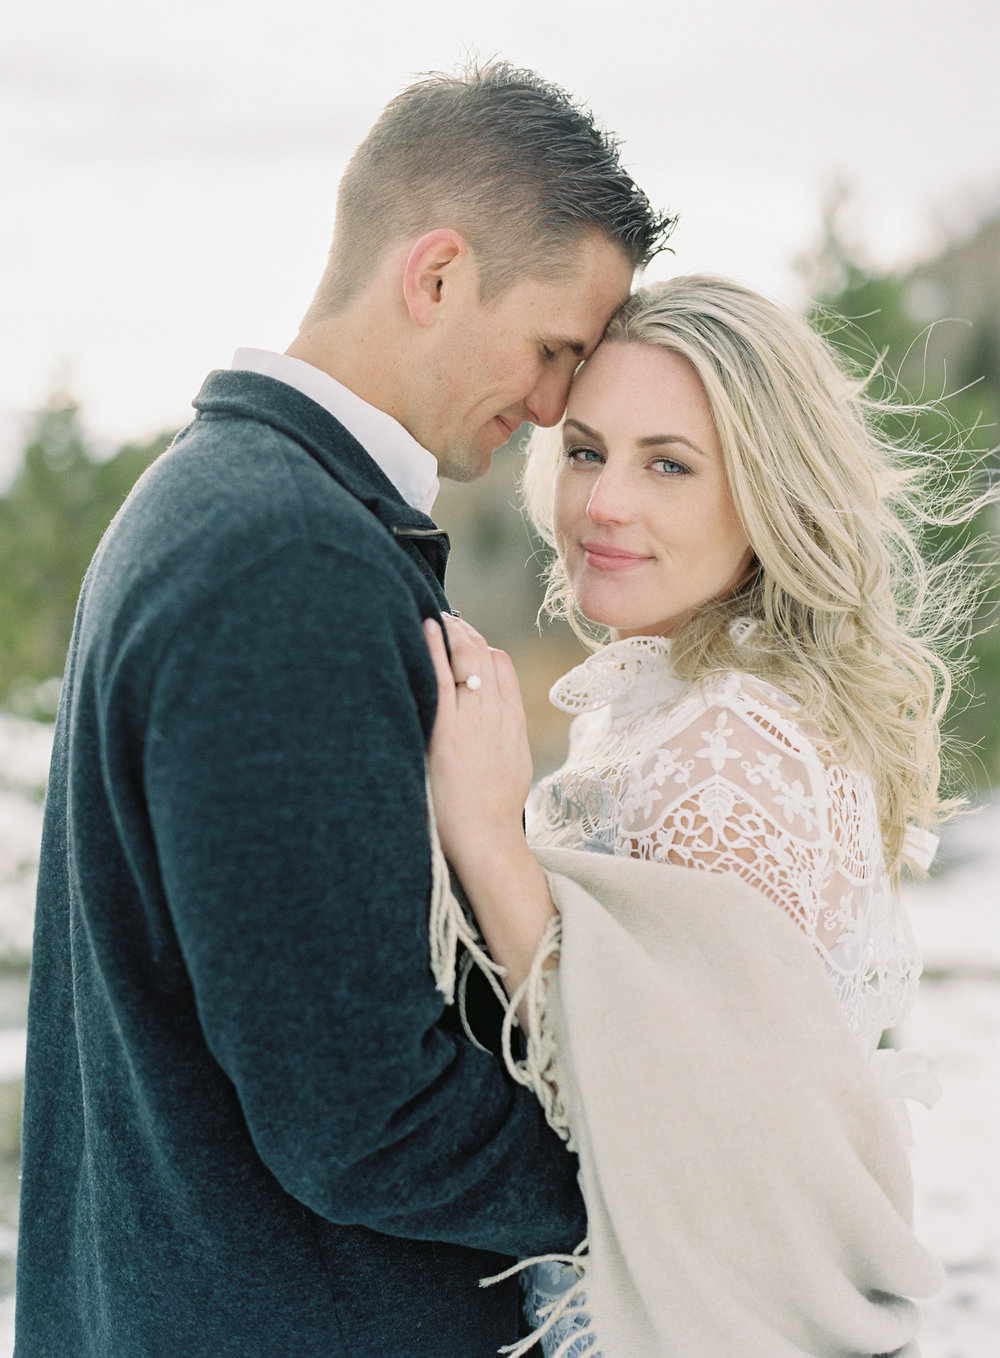 Sarah and John Engaged-Carrie King Photographer85.jpg